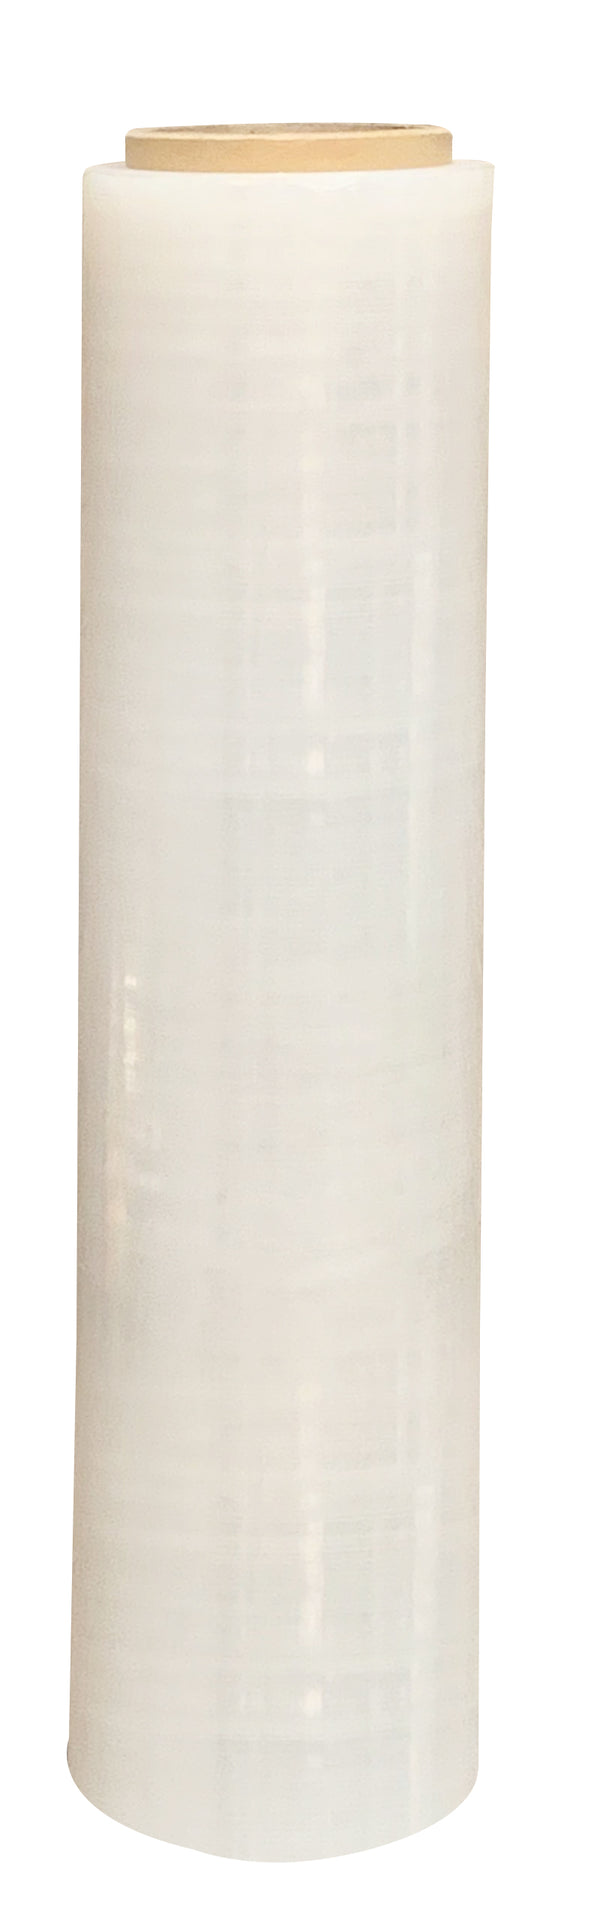 80 Gauge 18 x 1000 Blown Stretch Film (4 Rolls/Case)